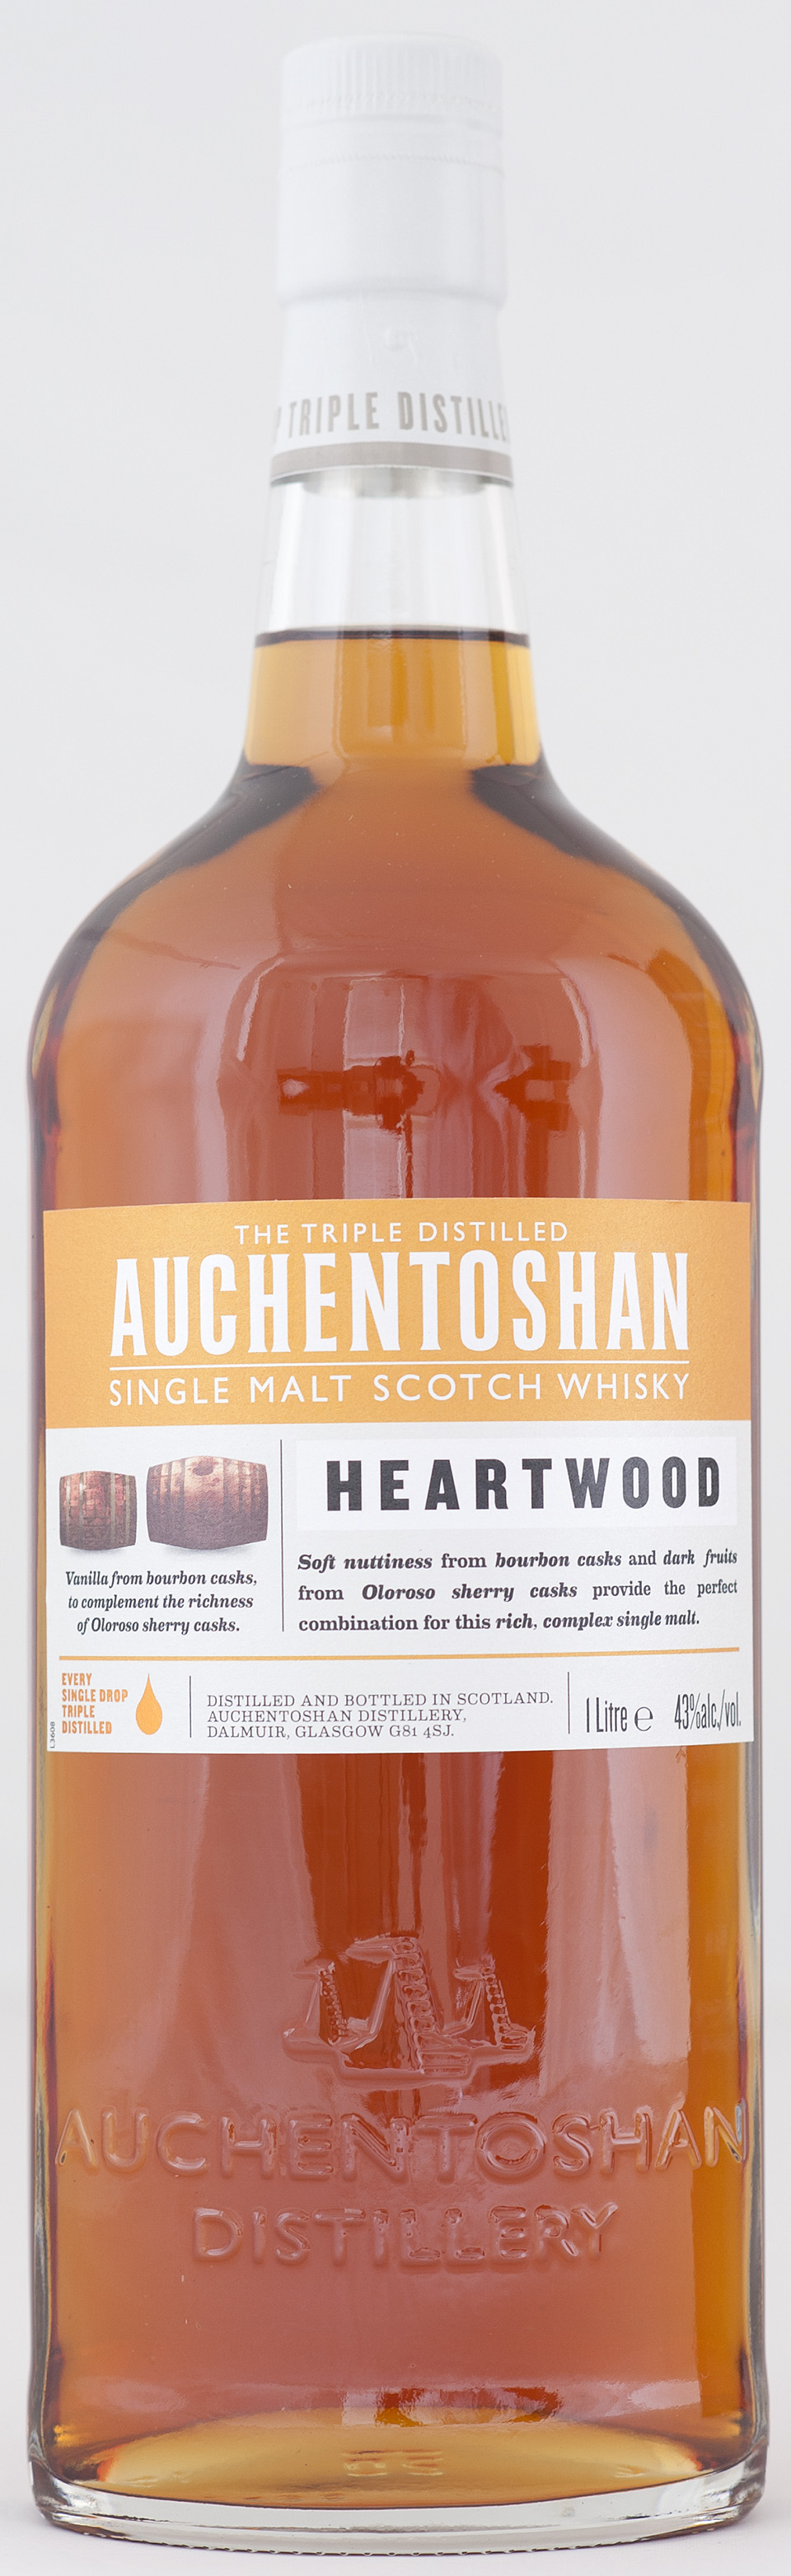 Billede: _DSC5646 Auchentoshan Heartwood - bottle.jpg